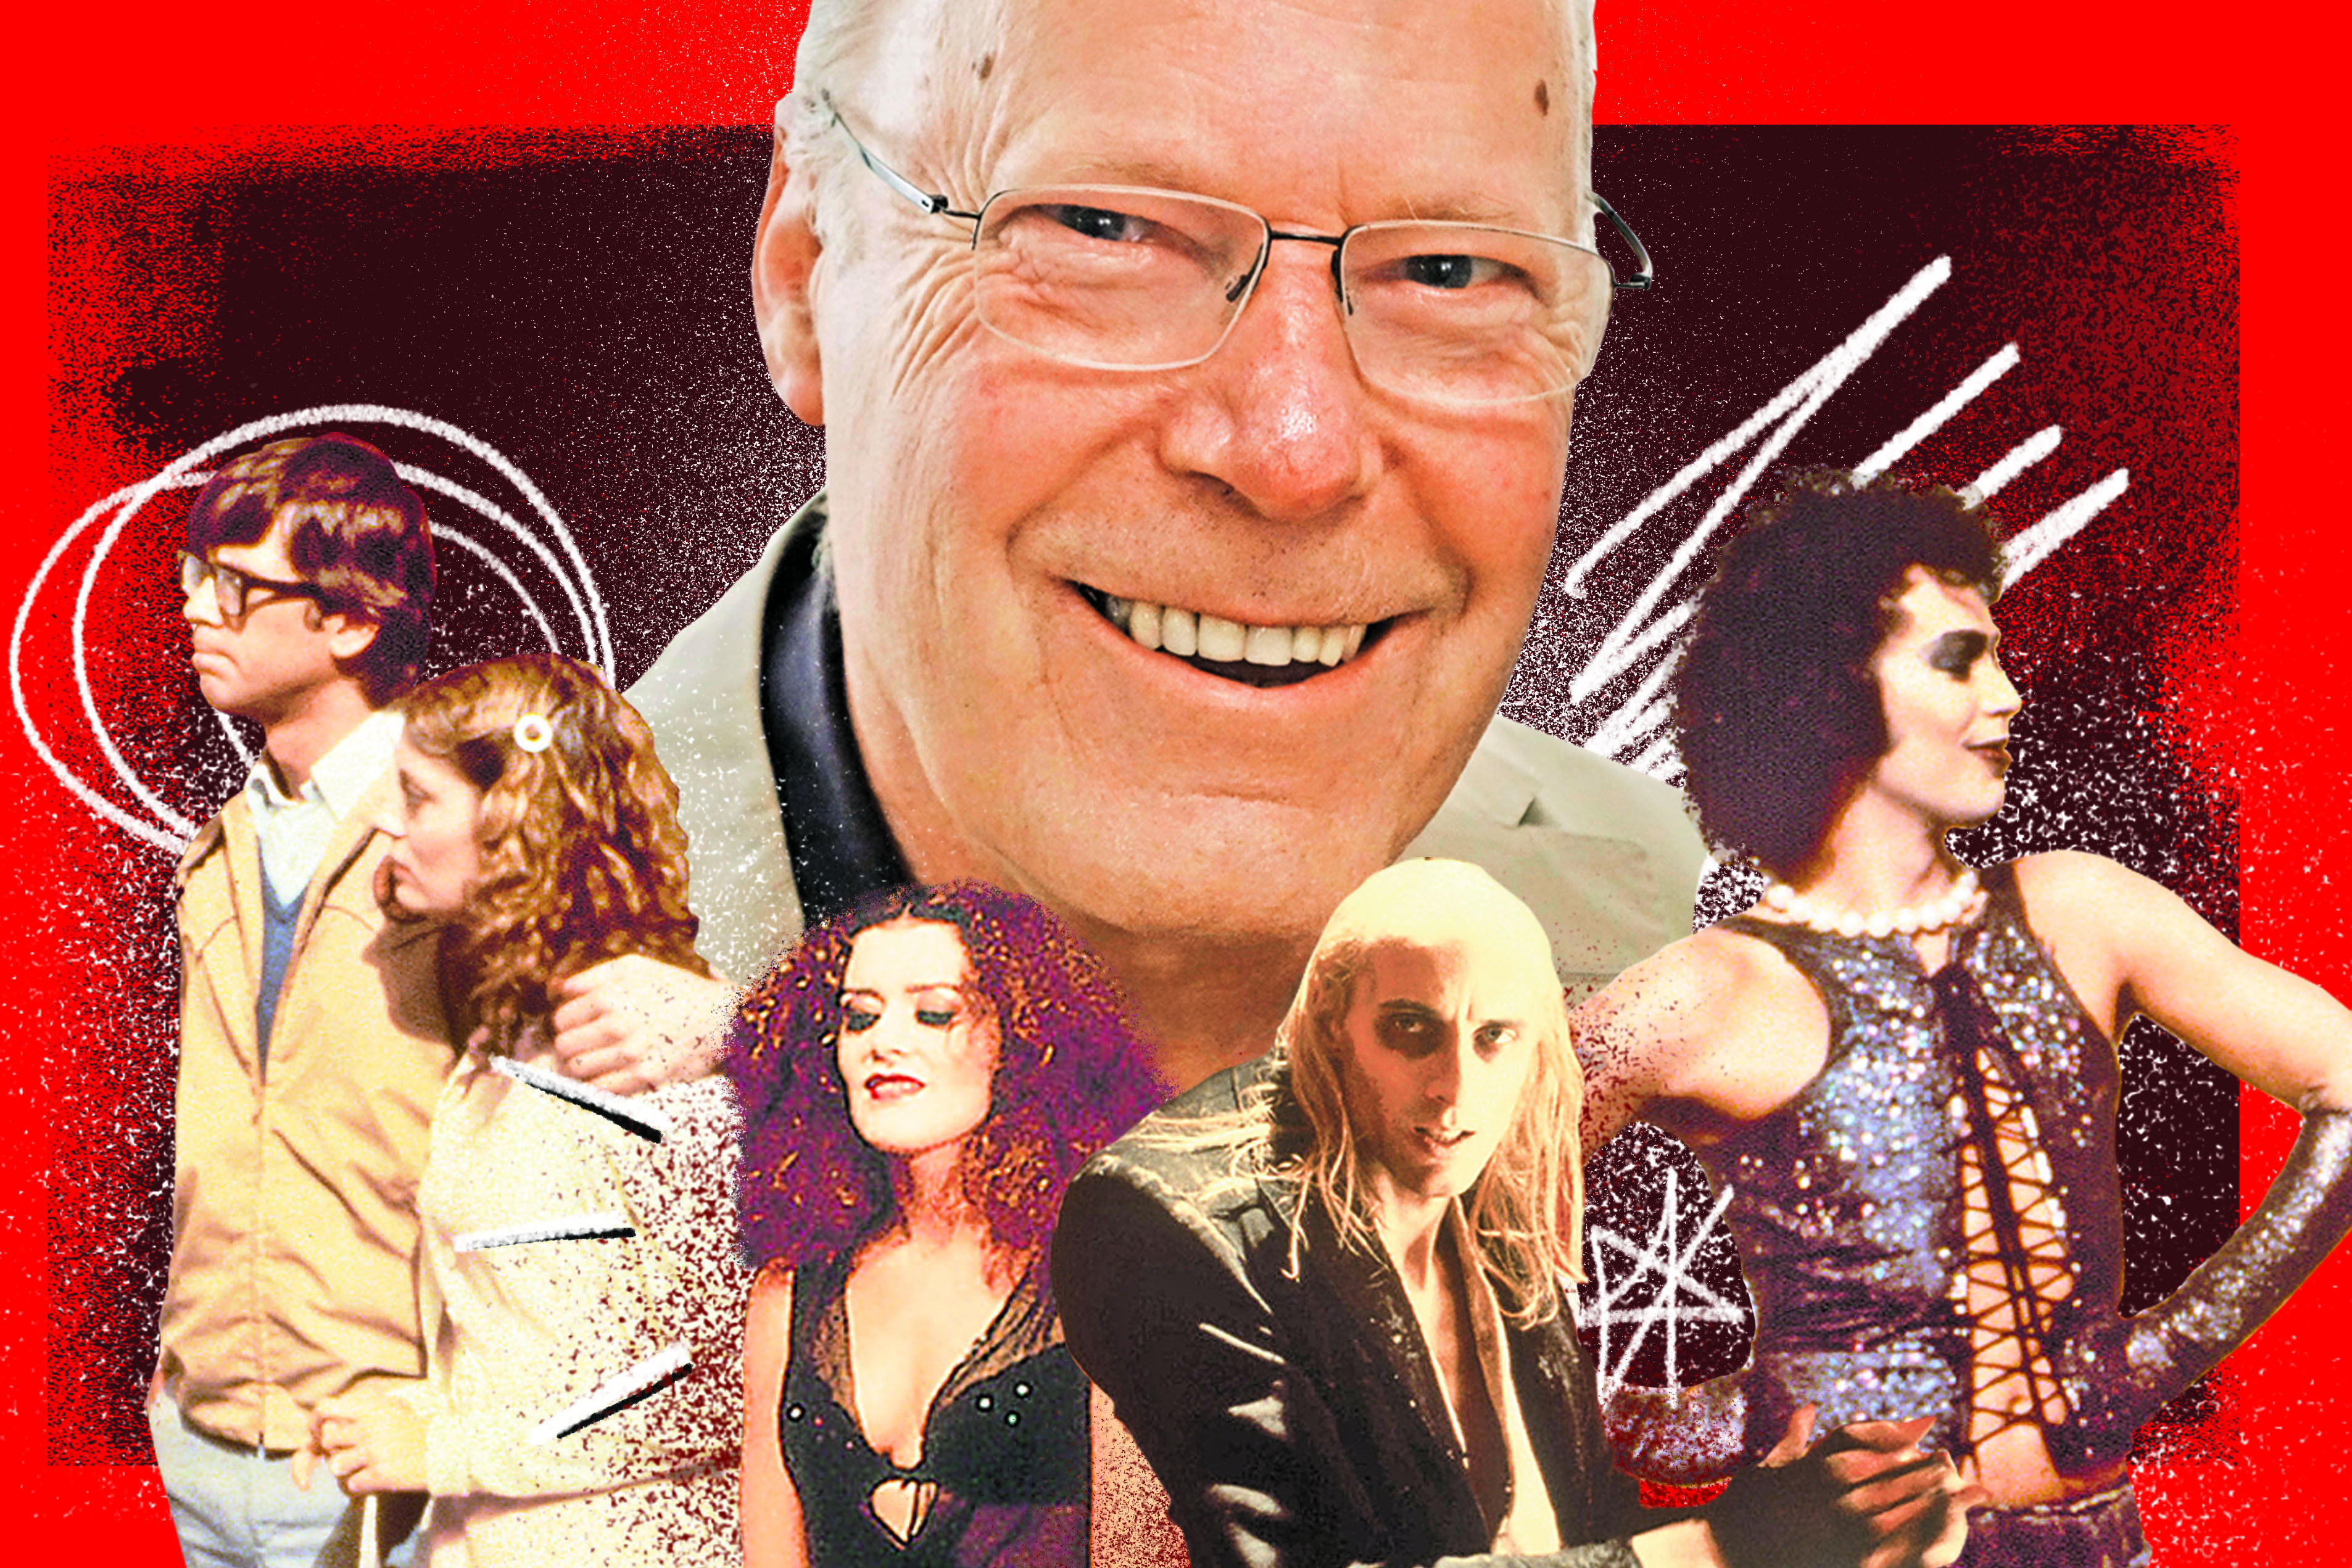 How 'Rocky Horror' went from tiny musical to filthy phenom